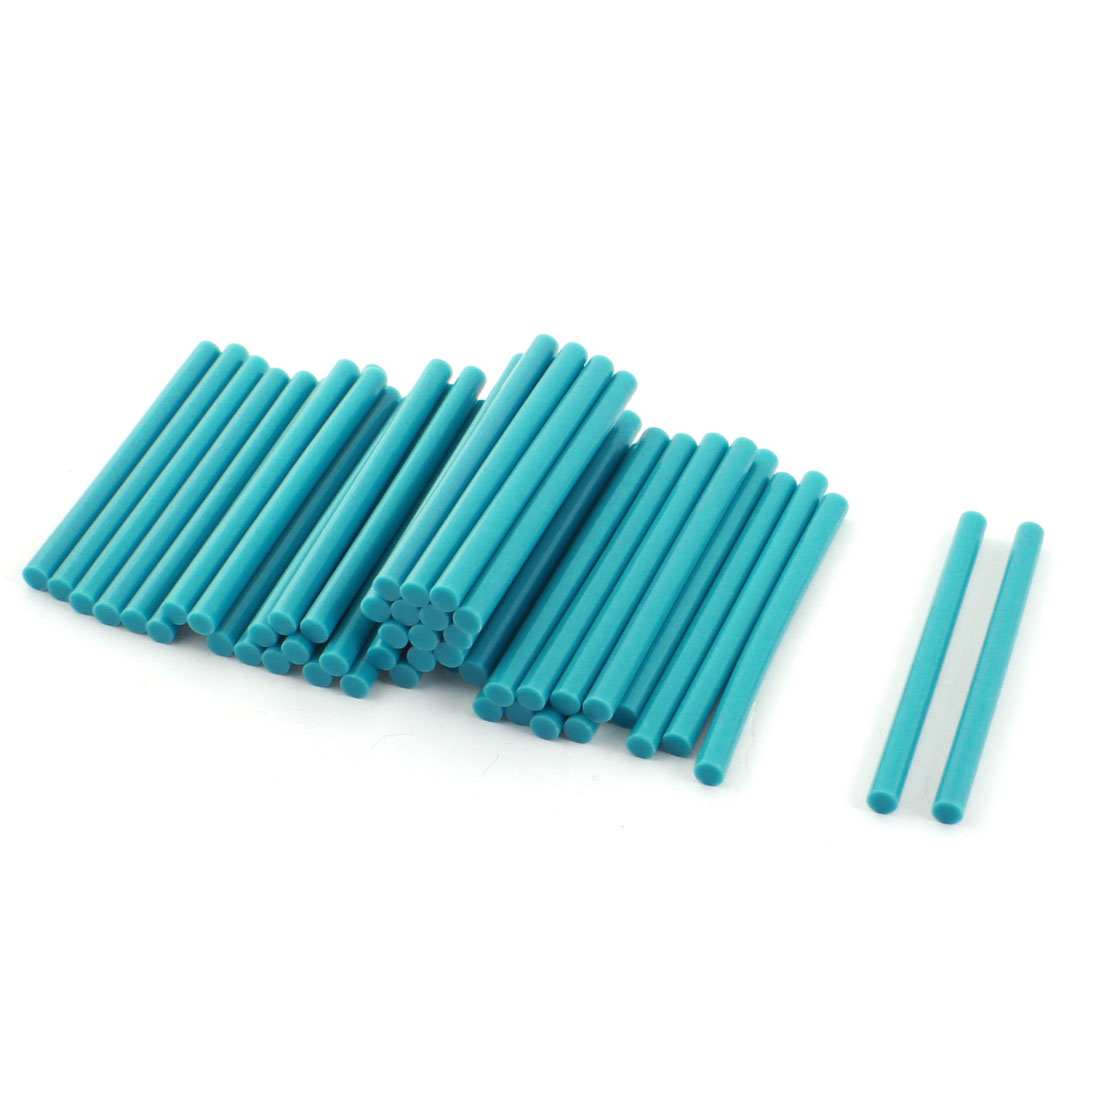 50 Pcs Teal Hot Melt Glue Gun Adhesive Sticks 7mm x 100mm